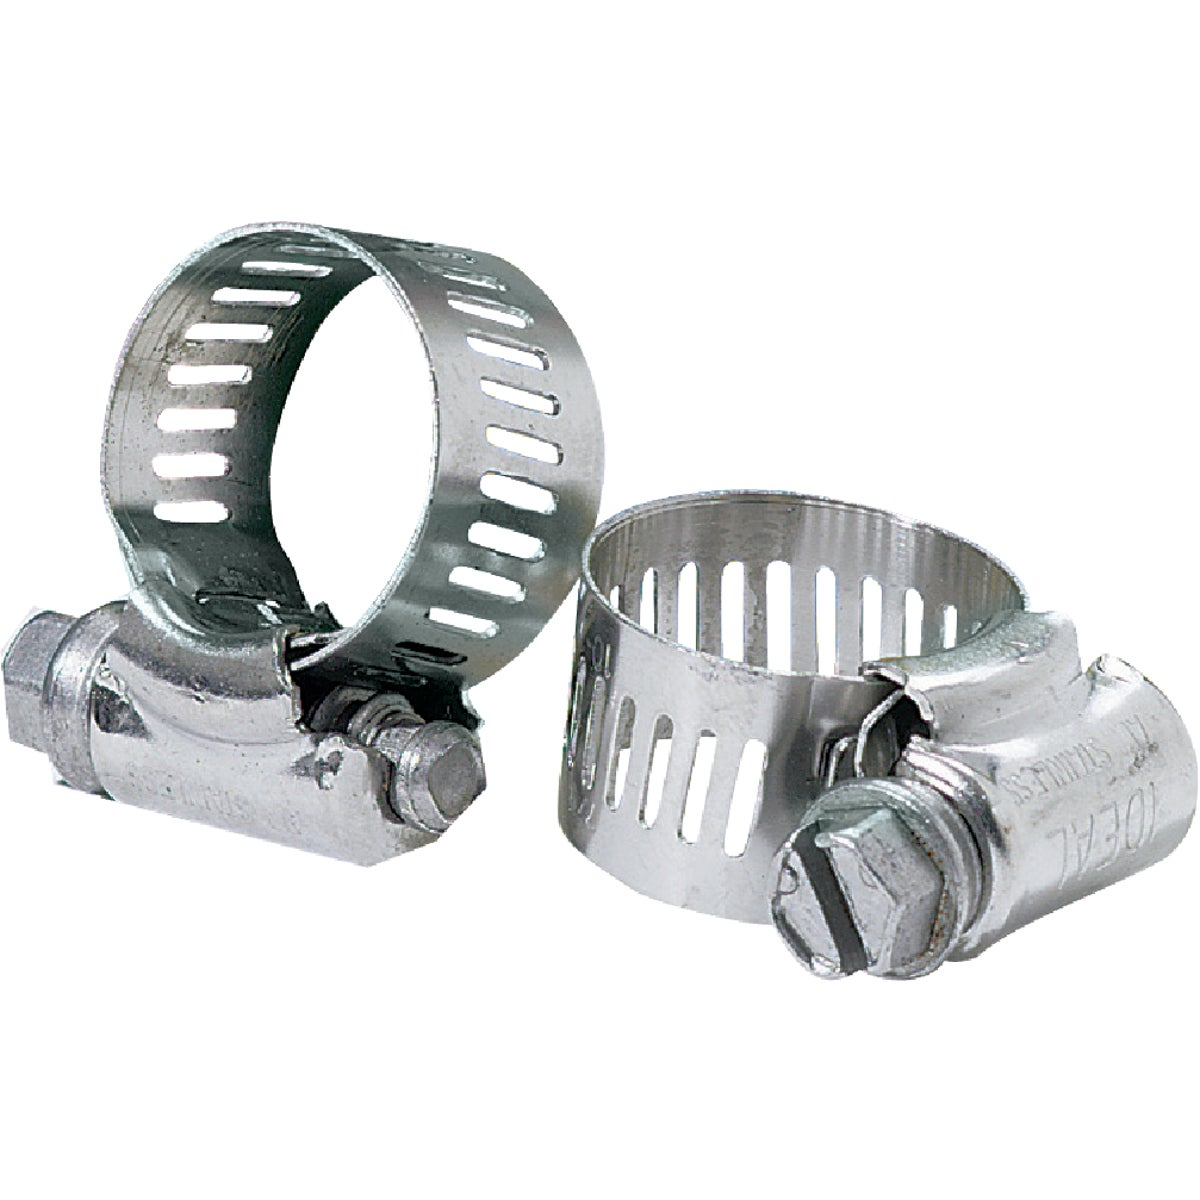 "4-1/2"" TO 6-1/2"" CLAMP - 6796153 by Ideal Corp"